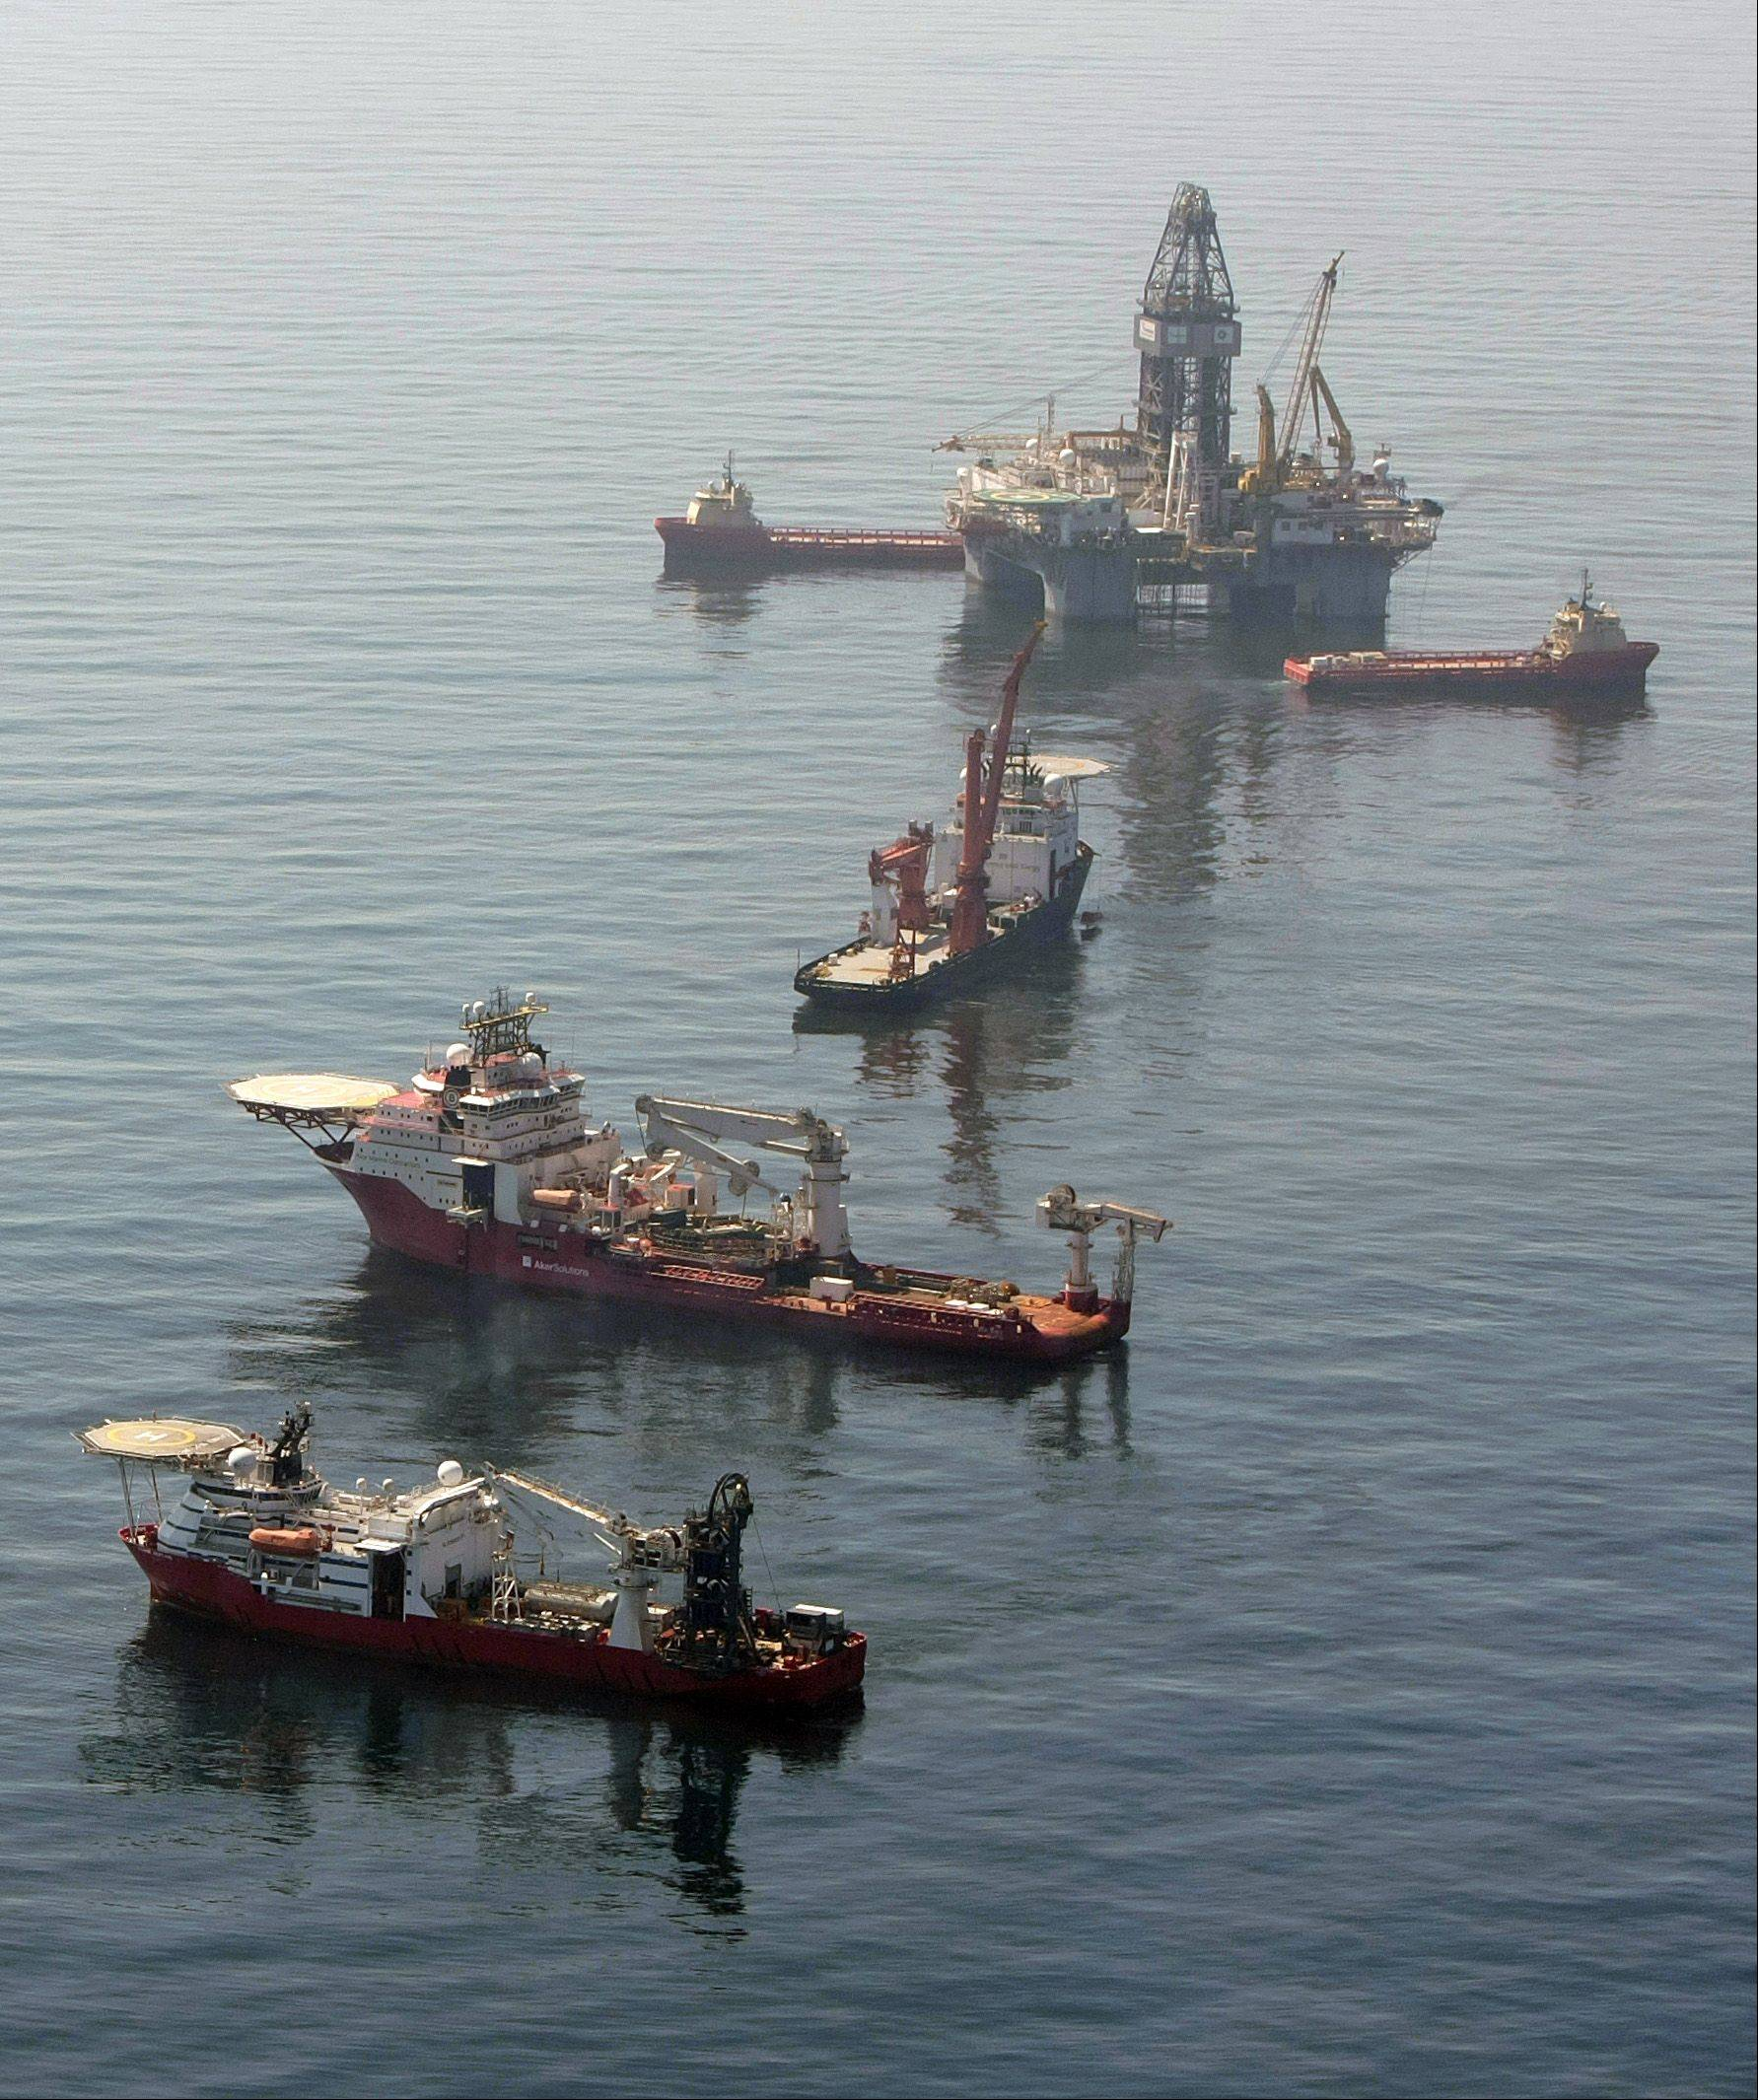 Vessels surround a drilling rig at the site of the Deepwater Horizon in the Gulf of Mexico Thursday, May 6, 2010.